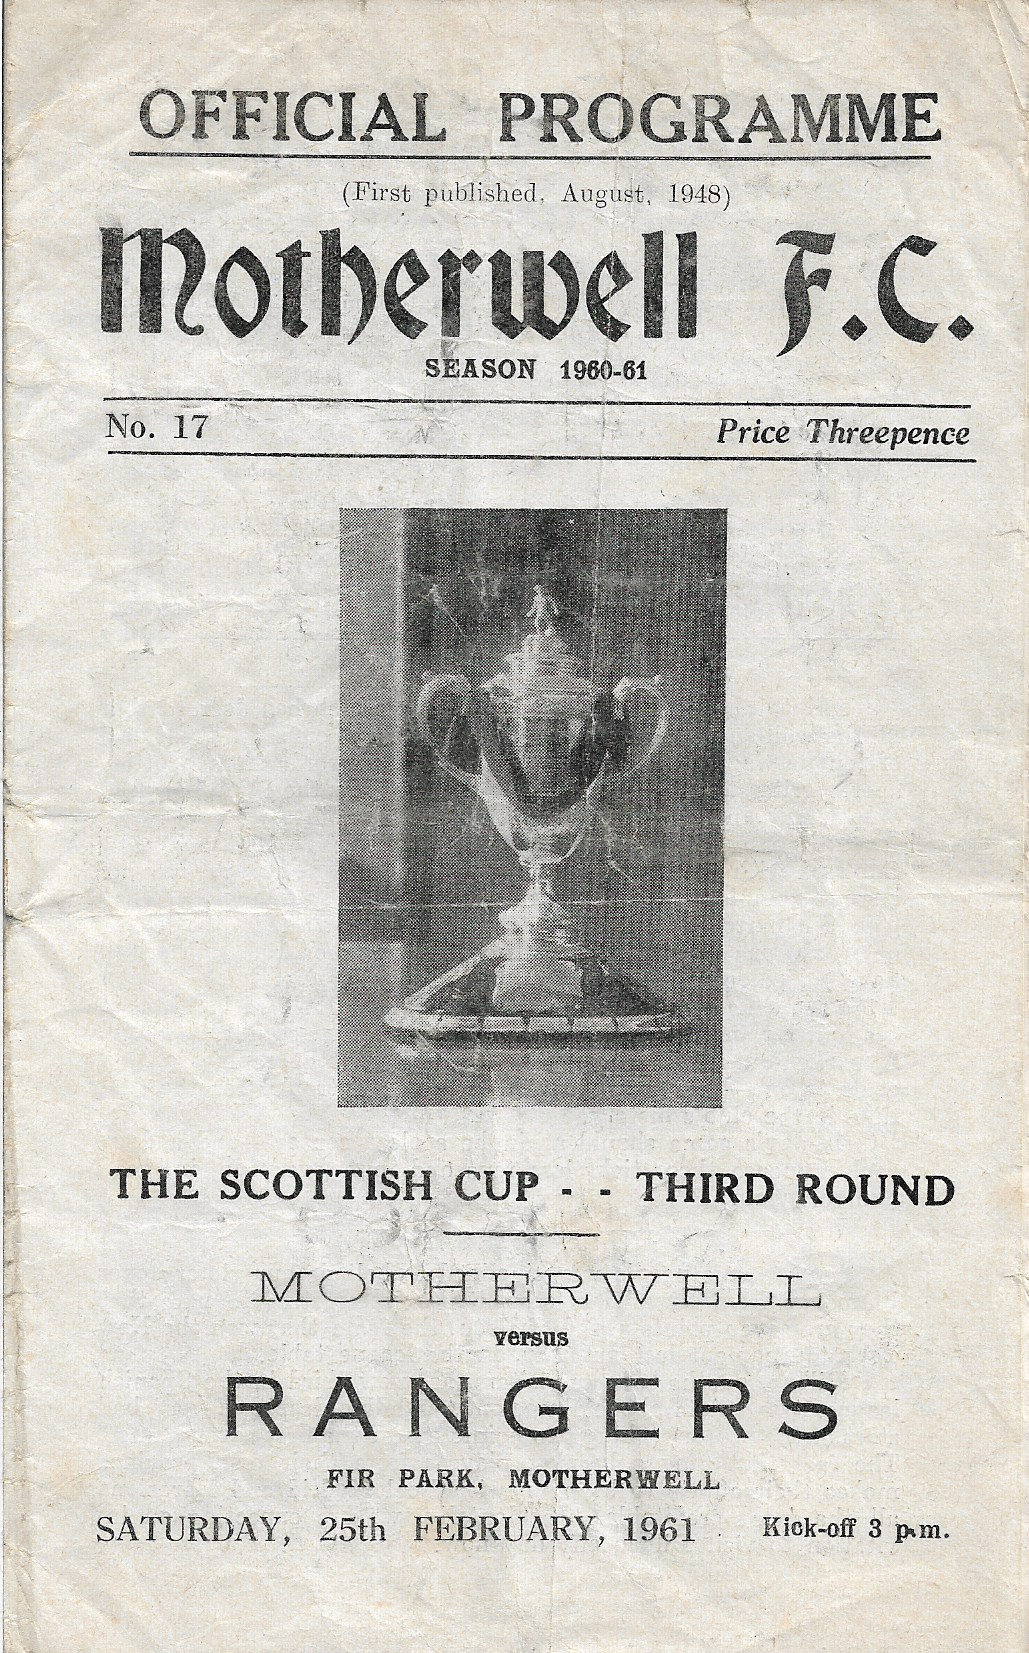 Rangers Programme Cover - Scottish Cup - 1961